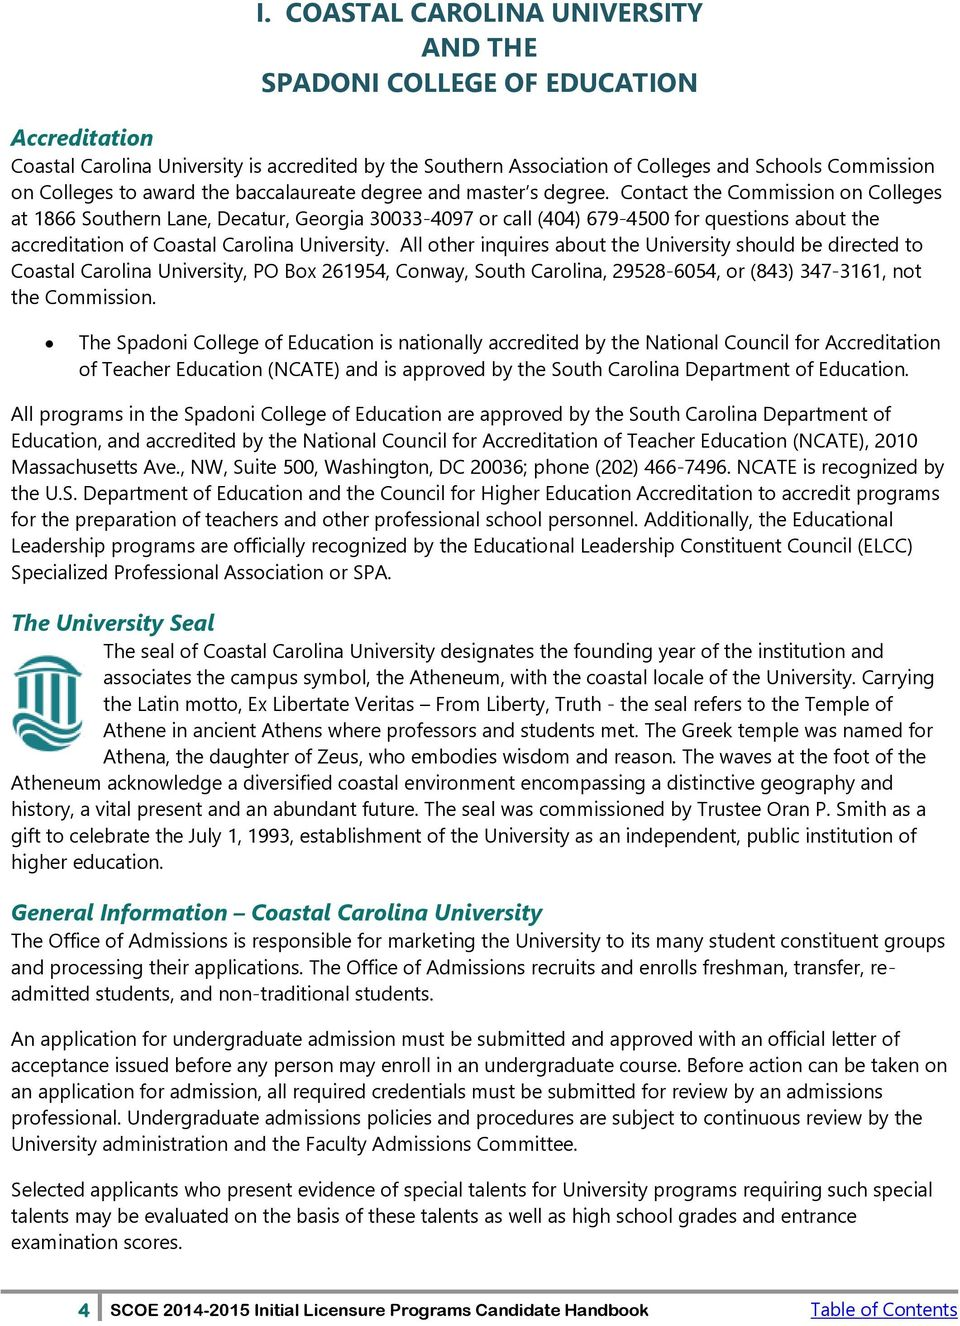 Contact the Commission on Colleges at 1866 Southern Lane, Decatur, Georgia 30033-4097 or call (404) 679-4500 for questions about the accreditation of Coastal Carolina University.